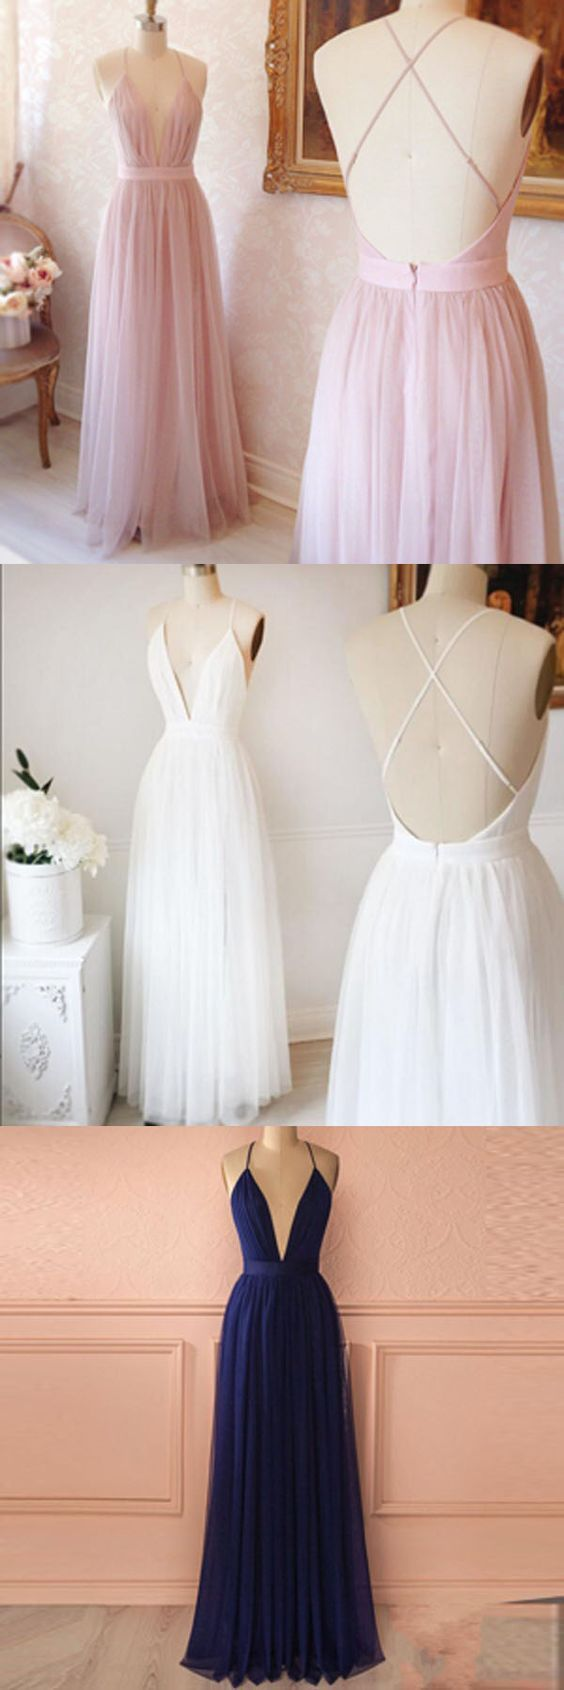 White deep v neck long party dress backless tulle formal gown with